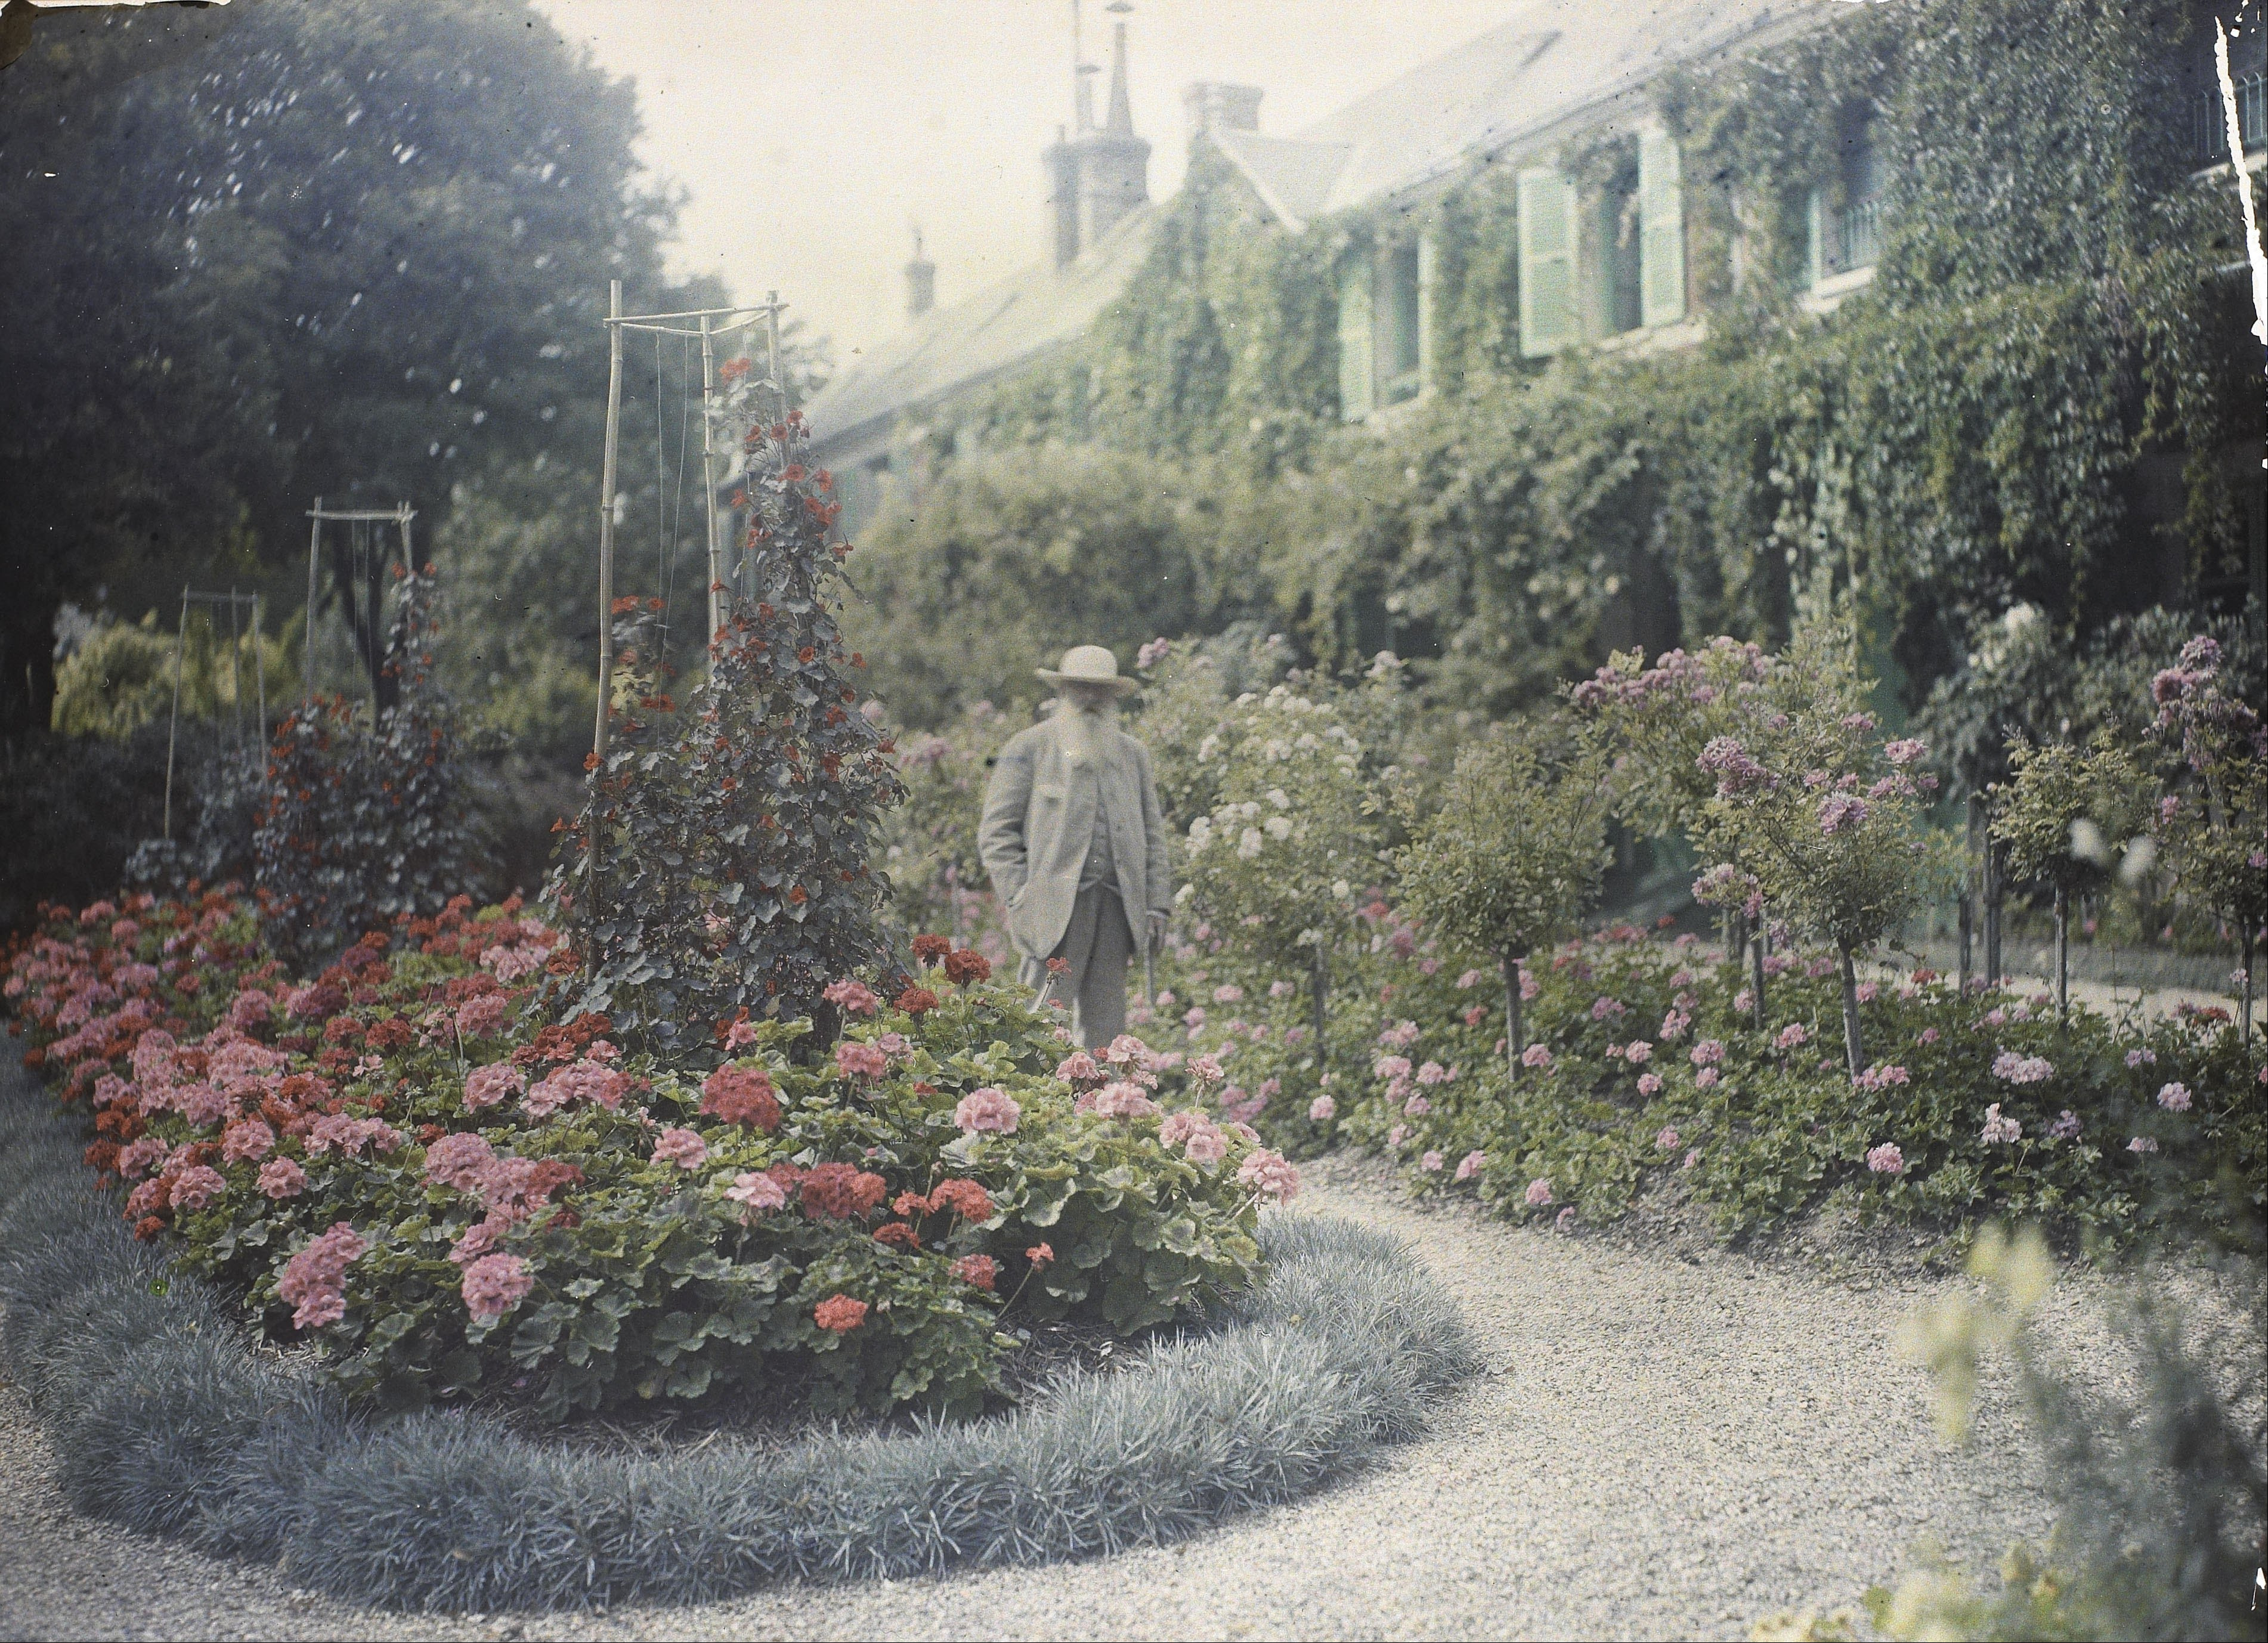 claude_monet_in_front_of_his_house_at_giverny_google_art_project.jpg